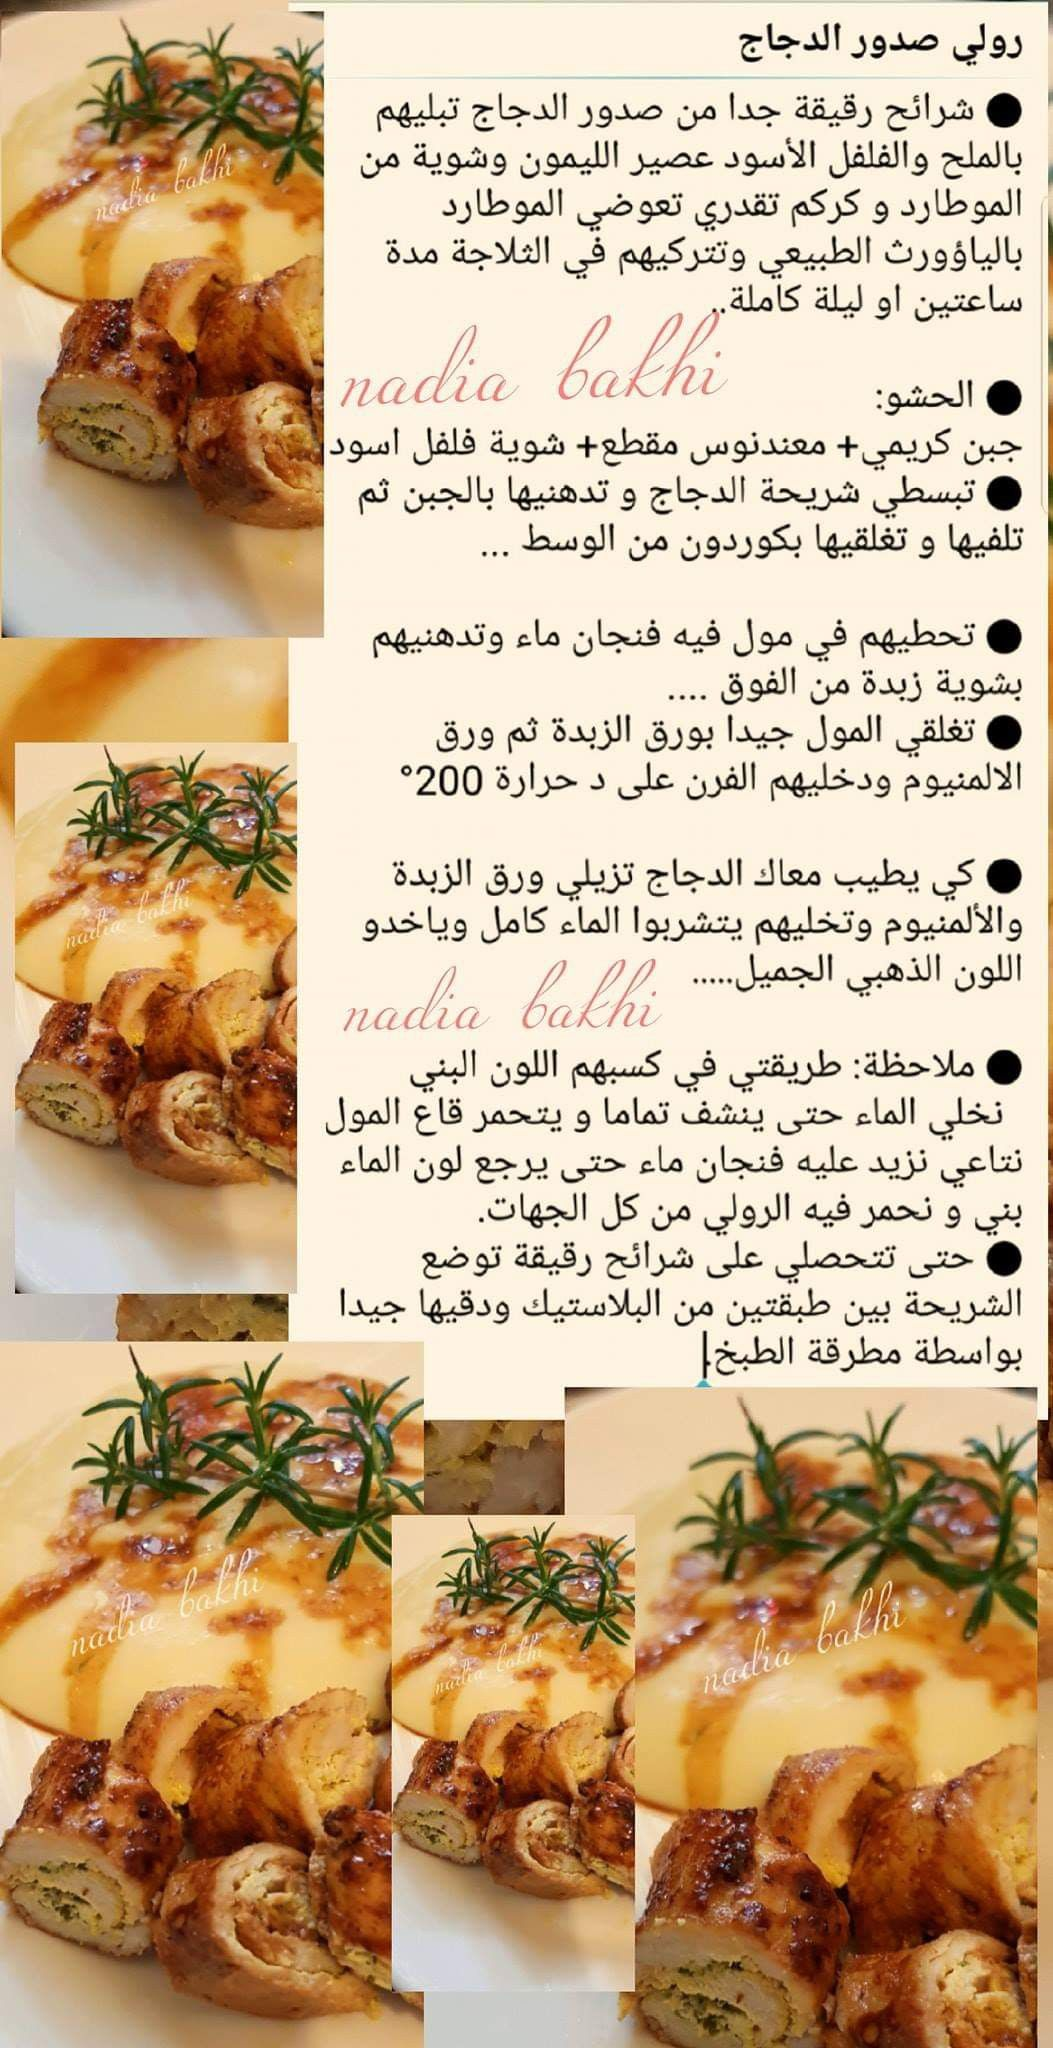 Pin By Rekiamerabti On Cooking Food Receipes Food Cooking Recipes